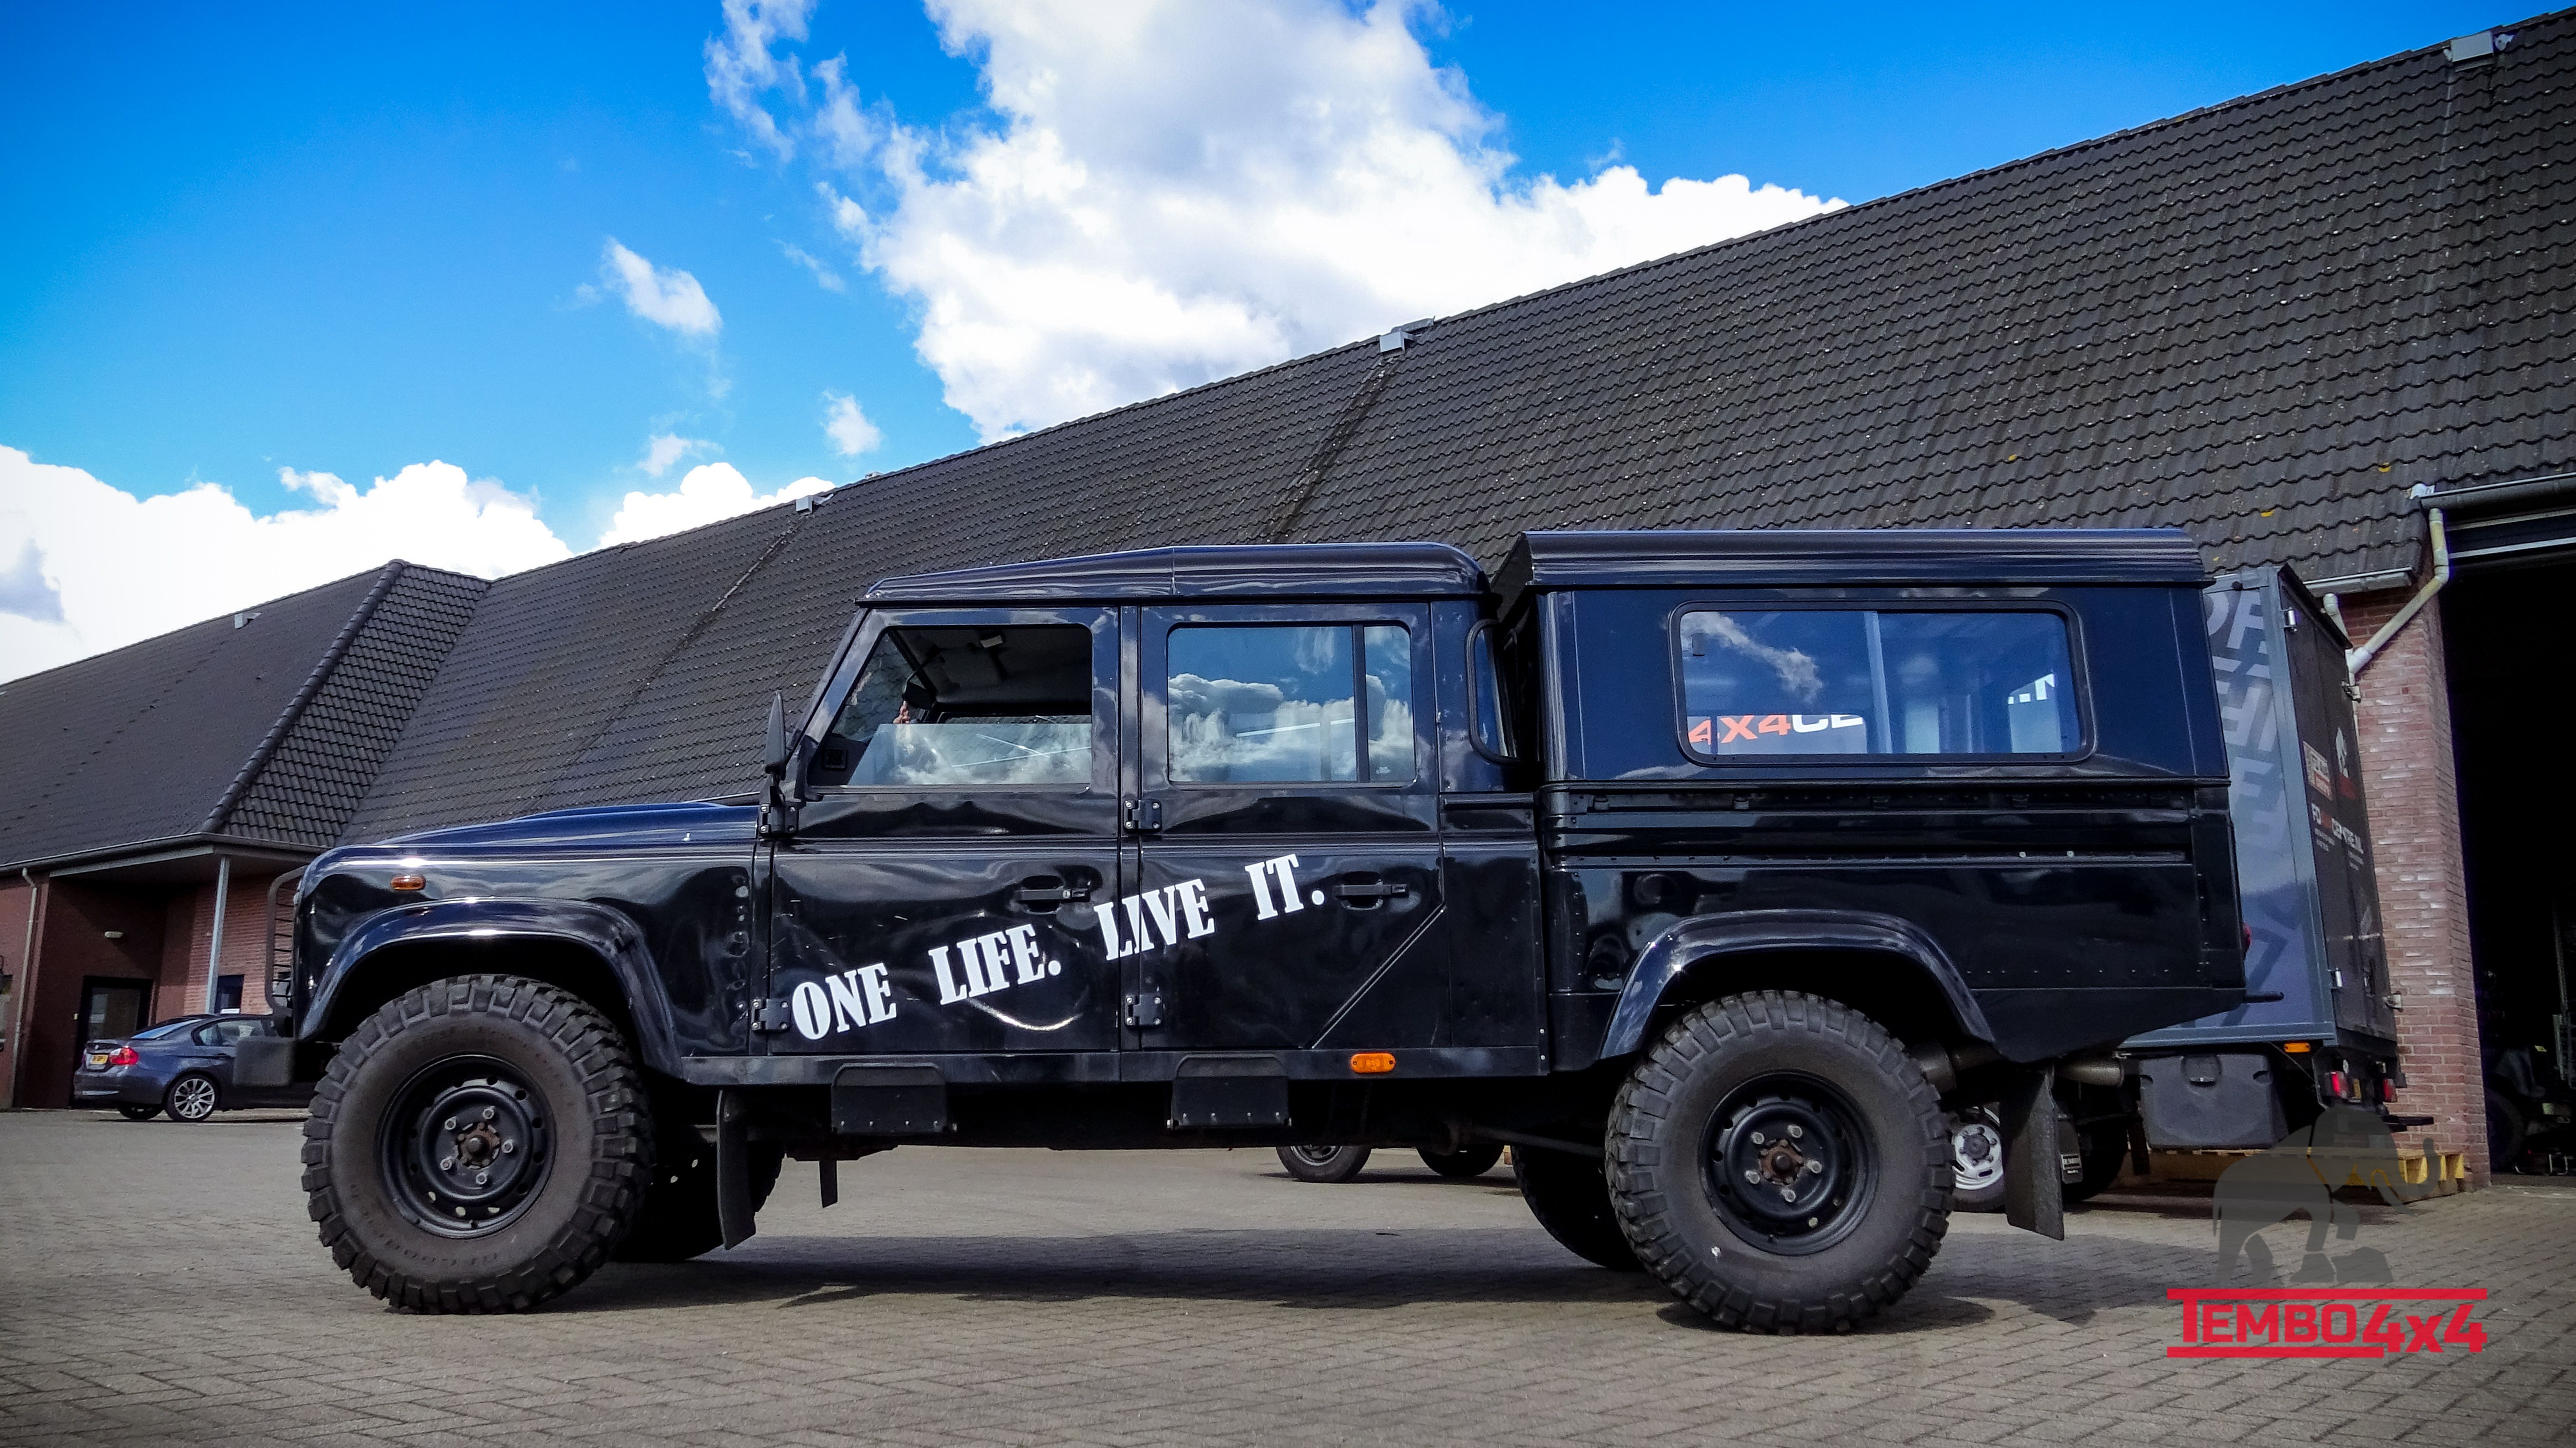 The Tembo 4x4 hardtop on a Land rover defender 130